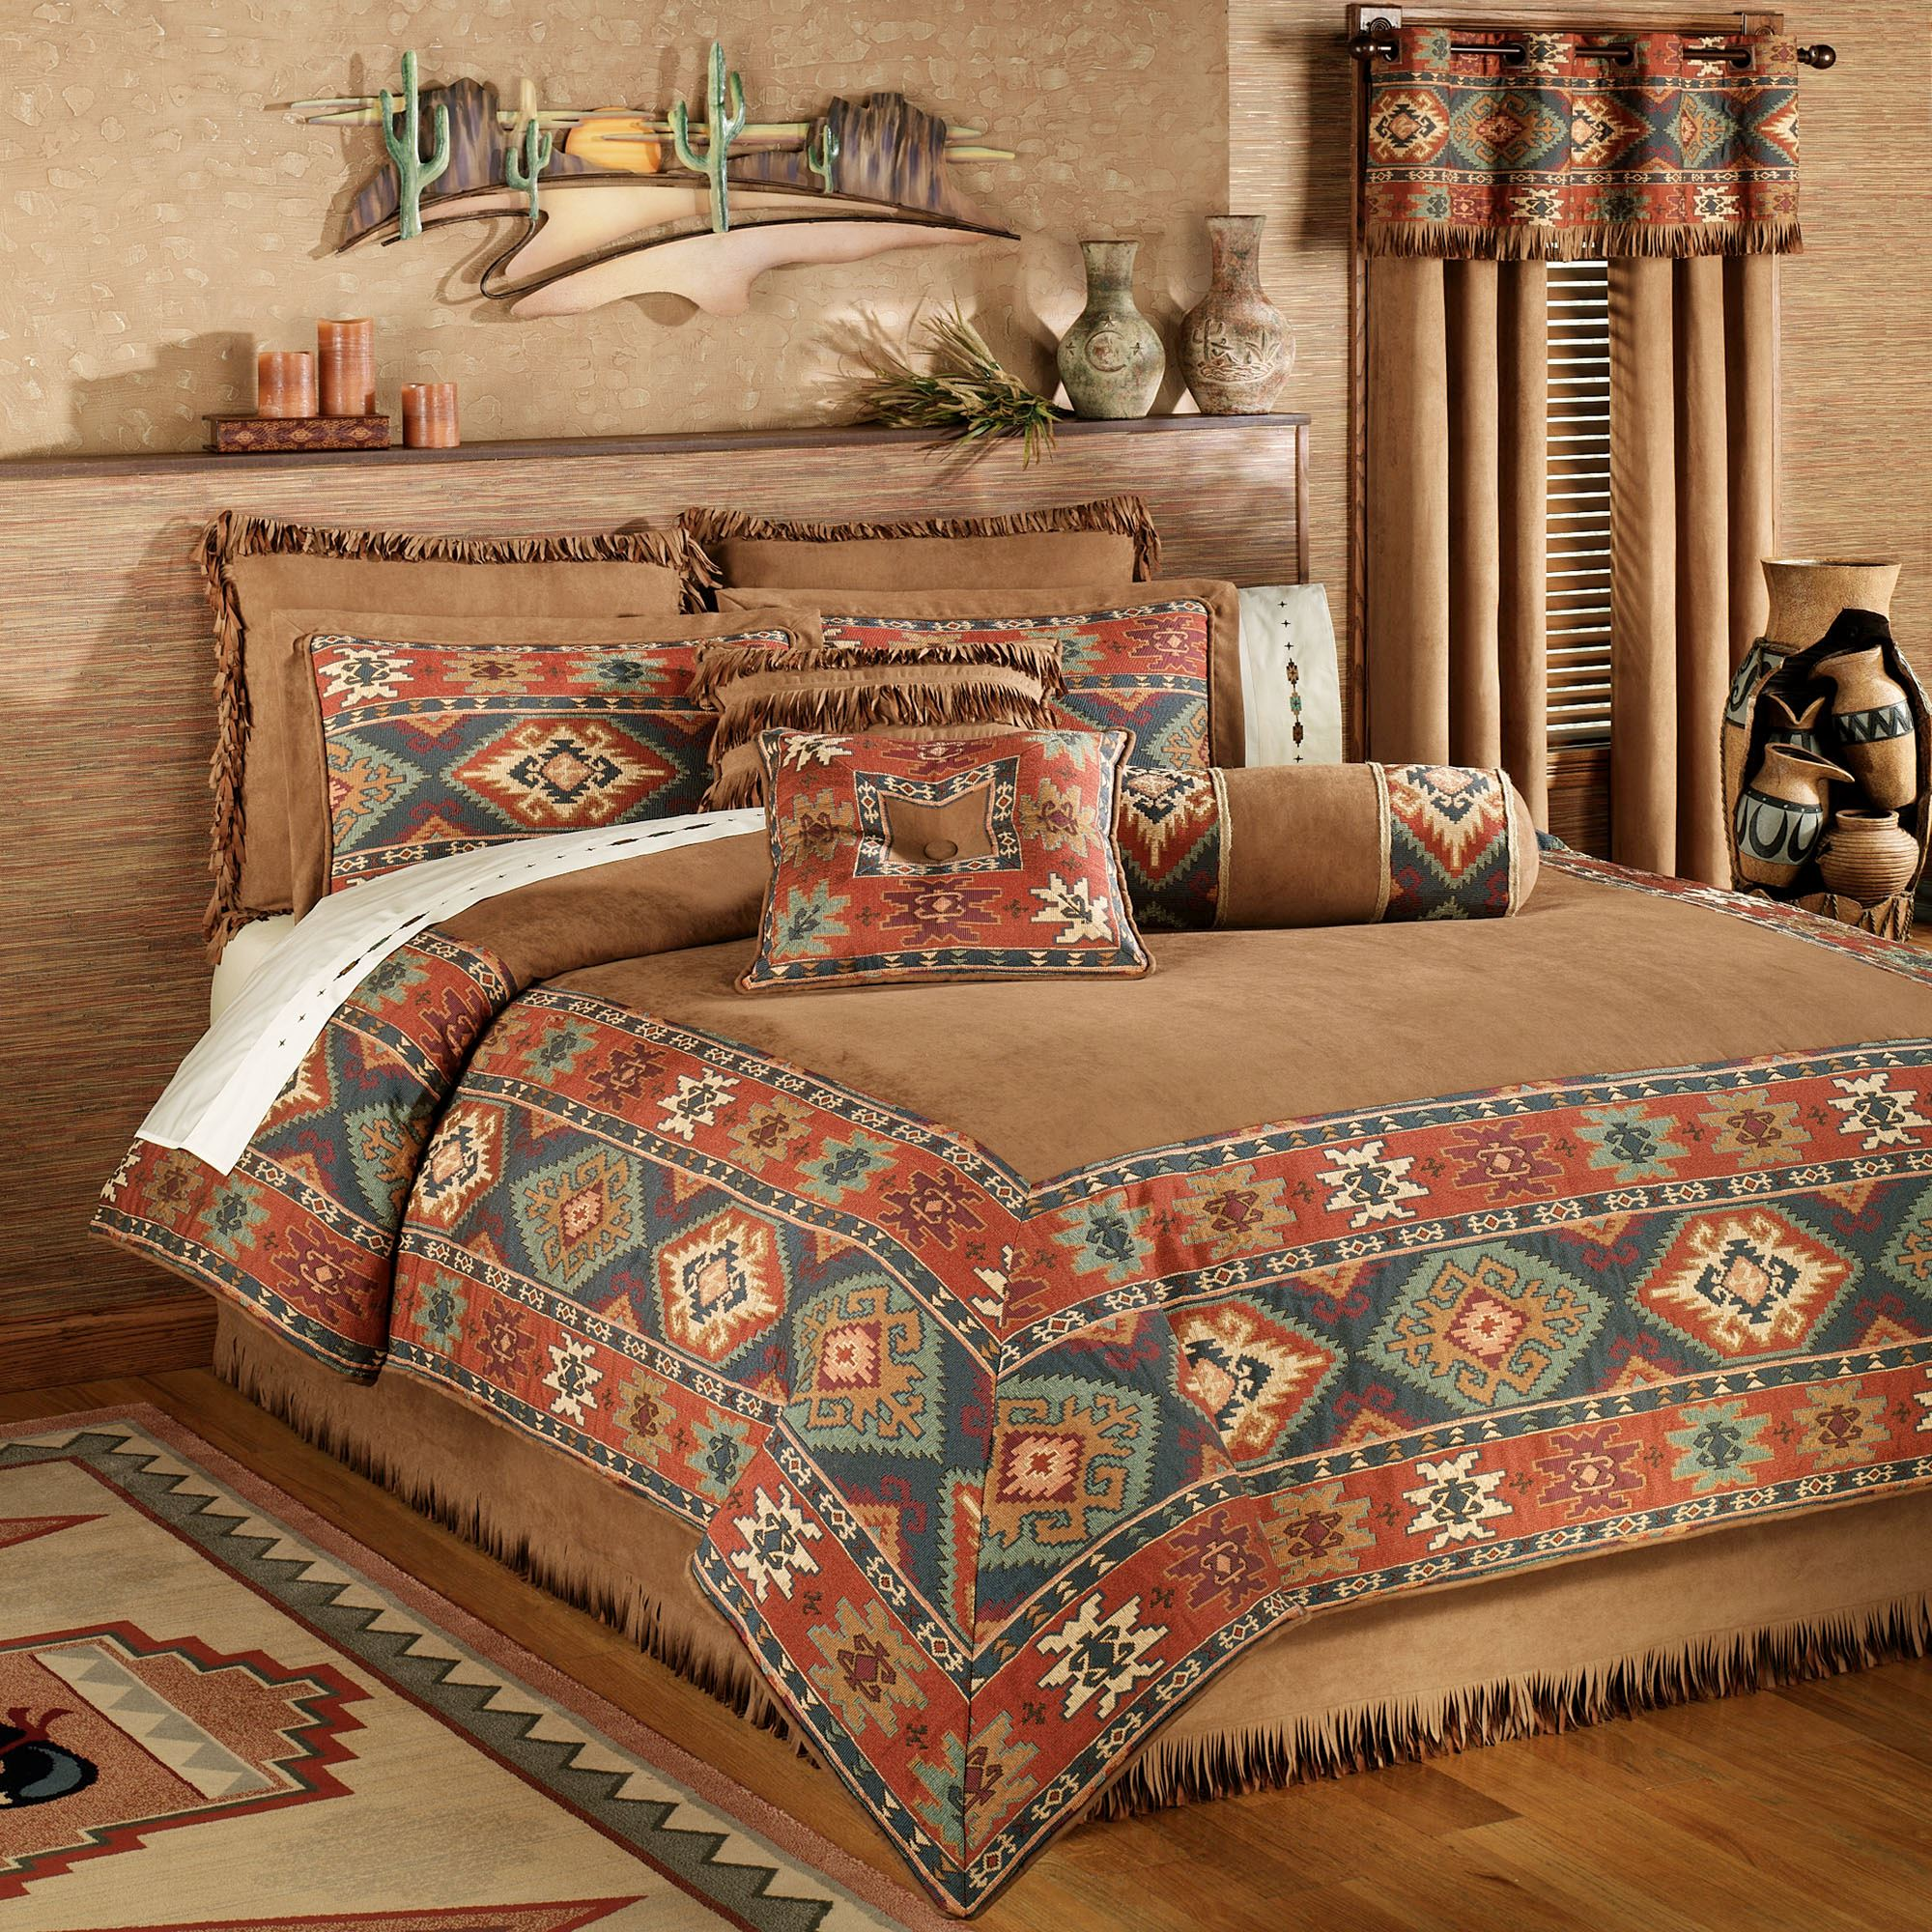 Canyon Ridge Comforter Bedding